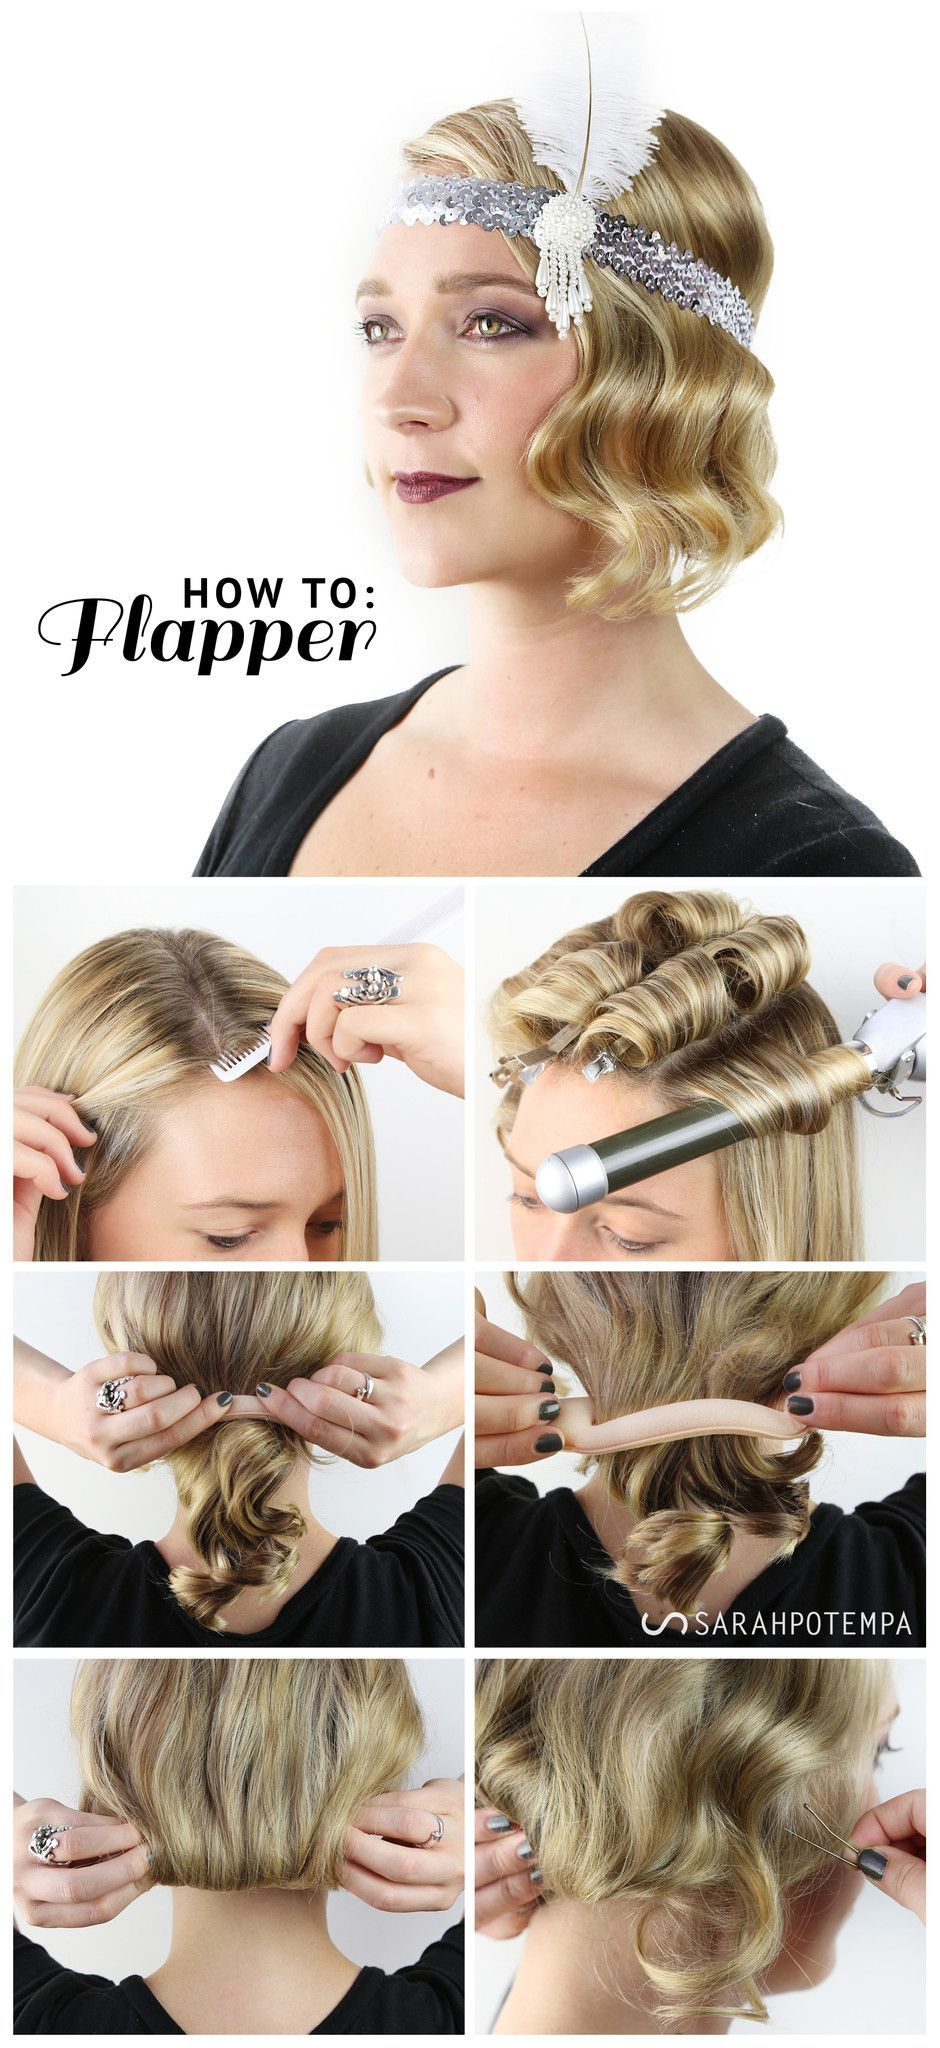 pin by prtha lastnight on hairstyles ideas in 2019 | flapper